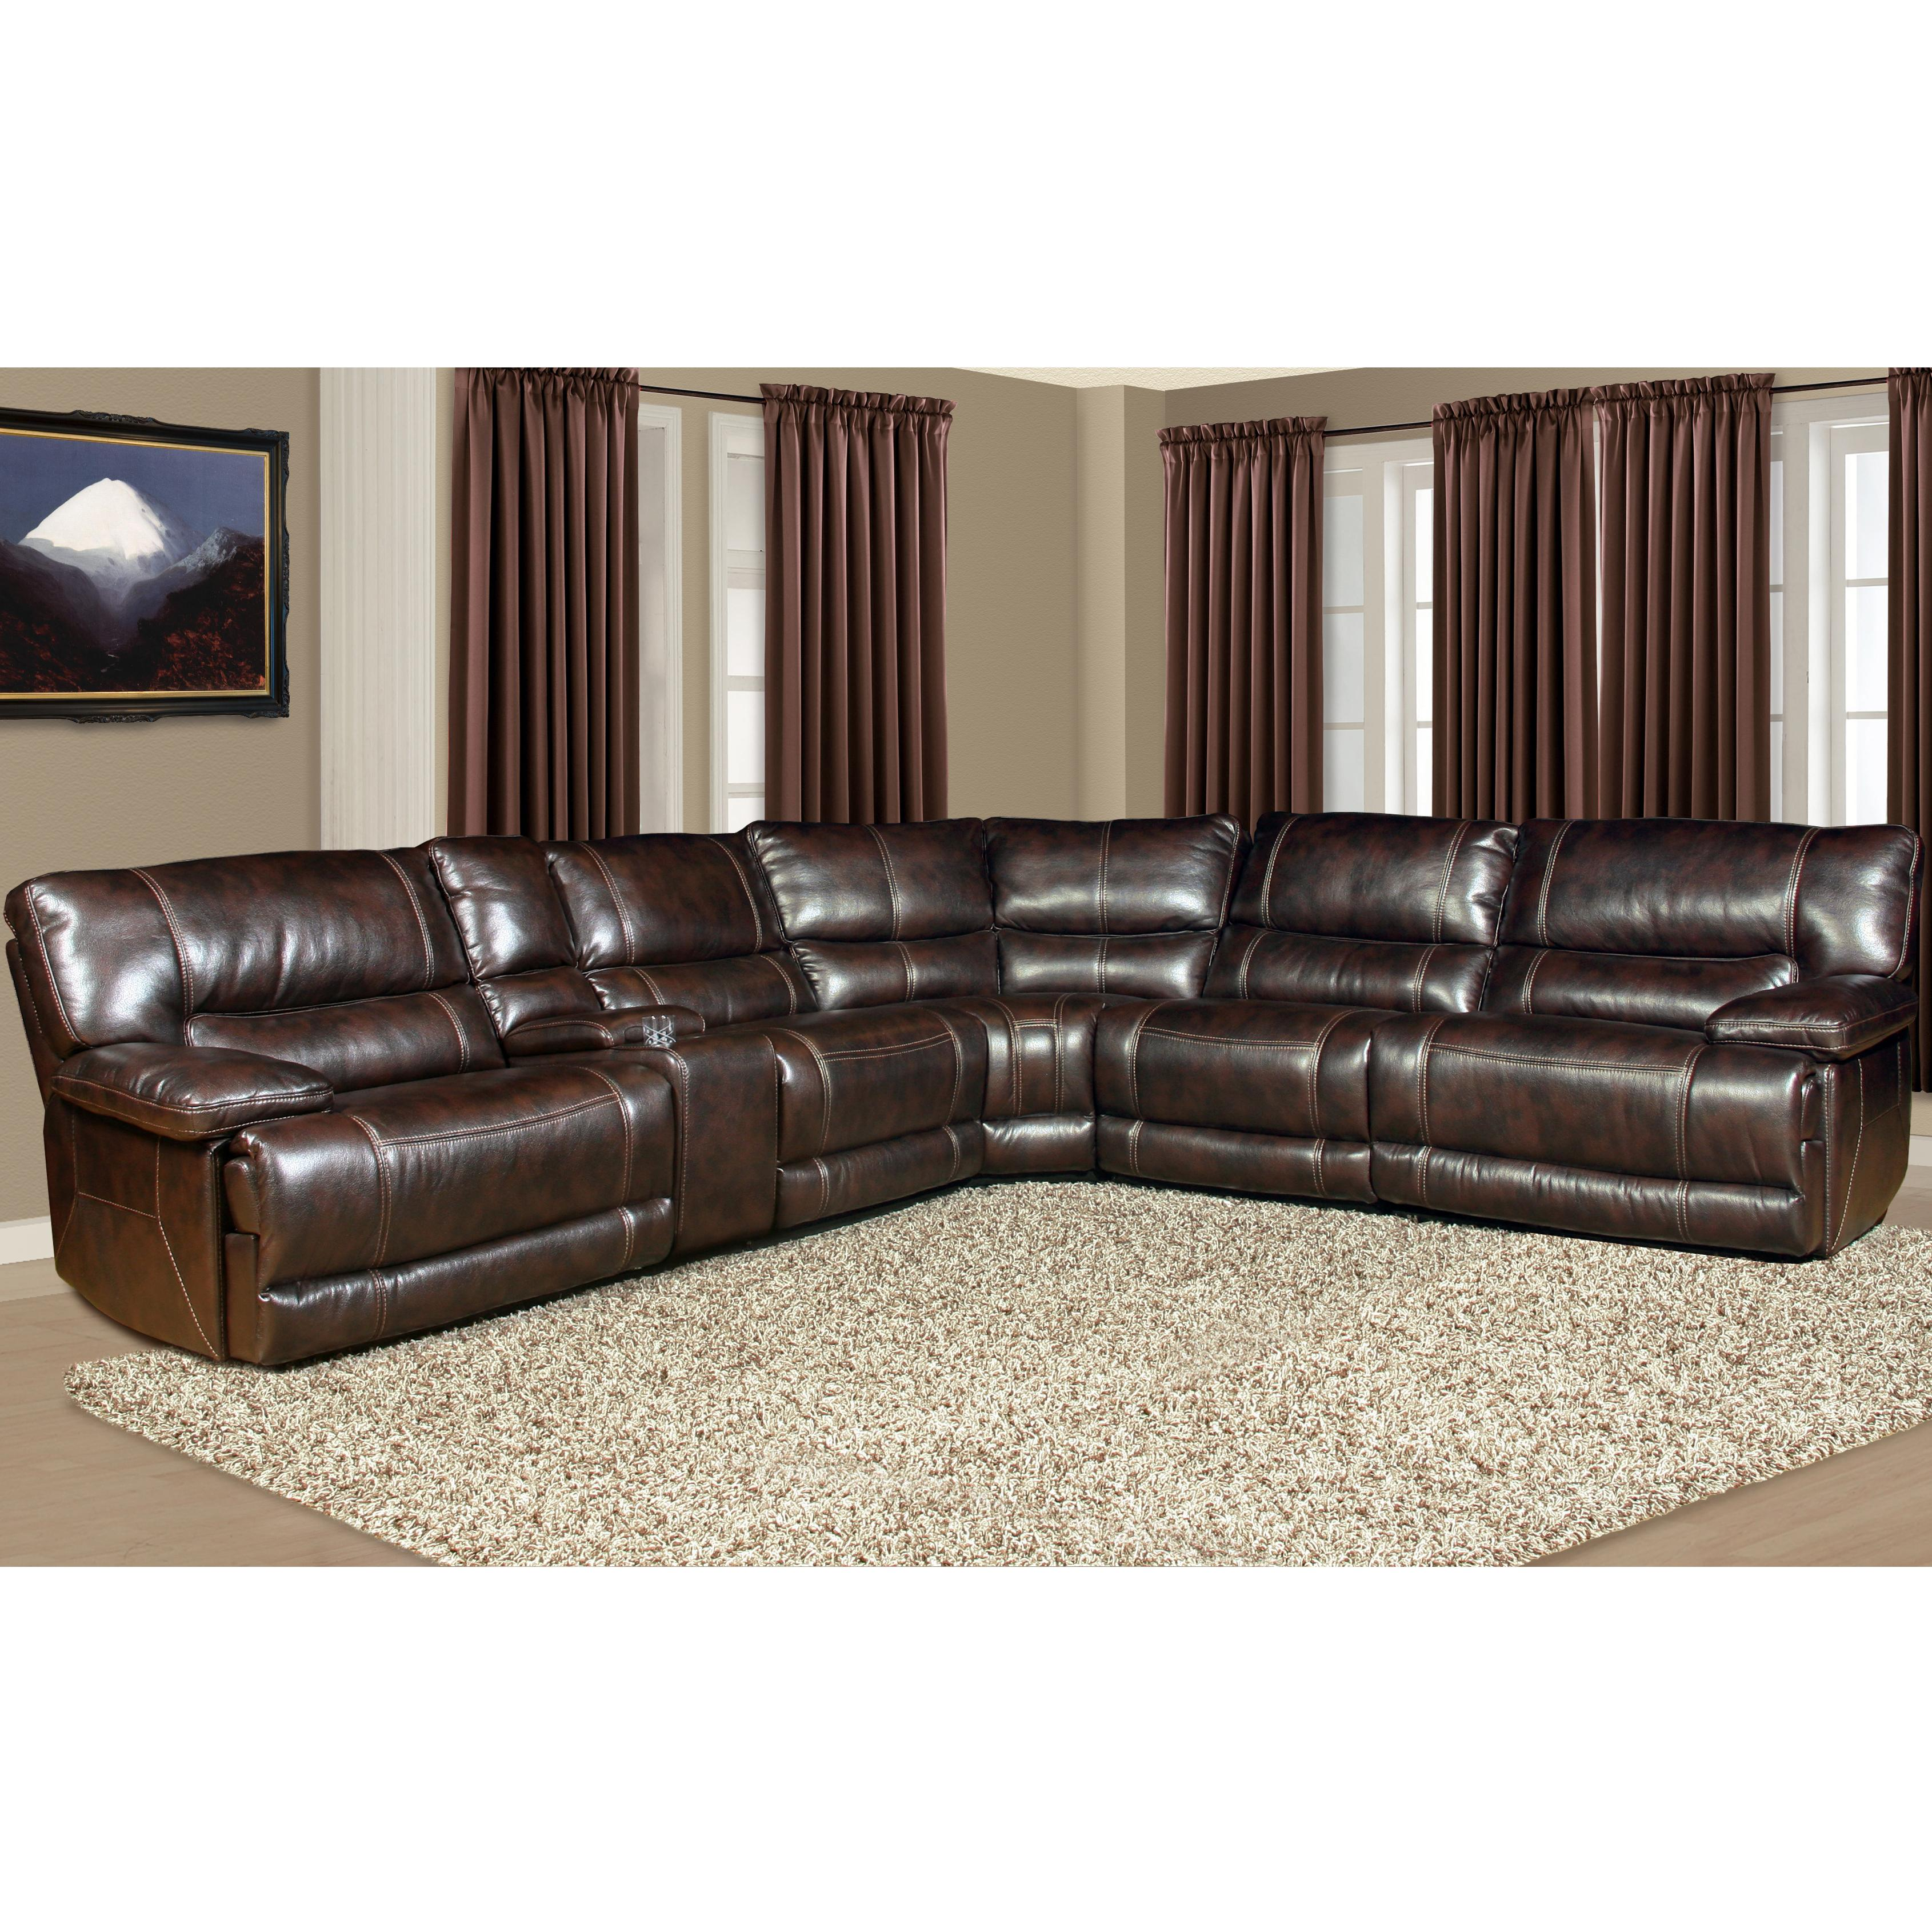 Parker Living Pegasus Power Reclining Sectional Sofa - Item Number: MPEG-PACKA-NU